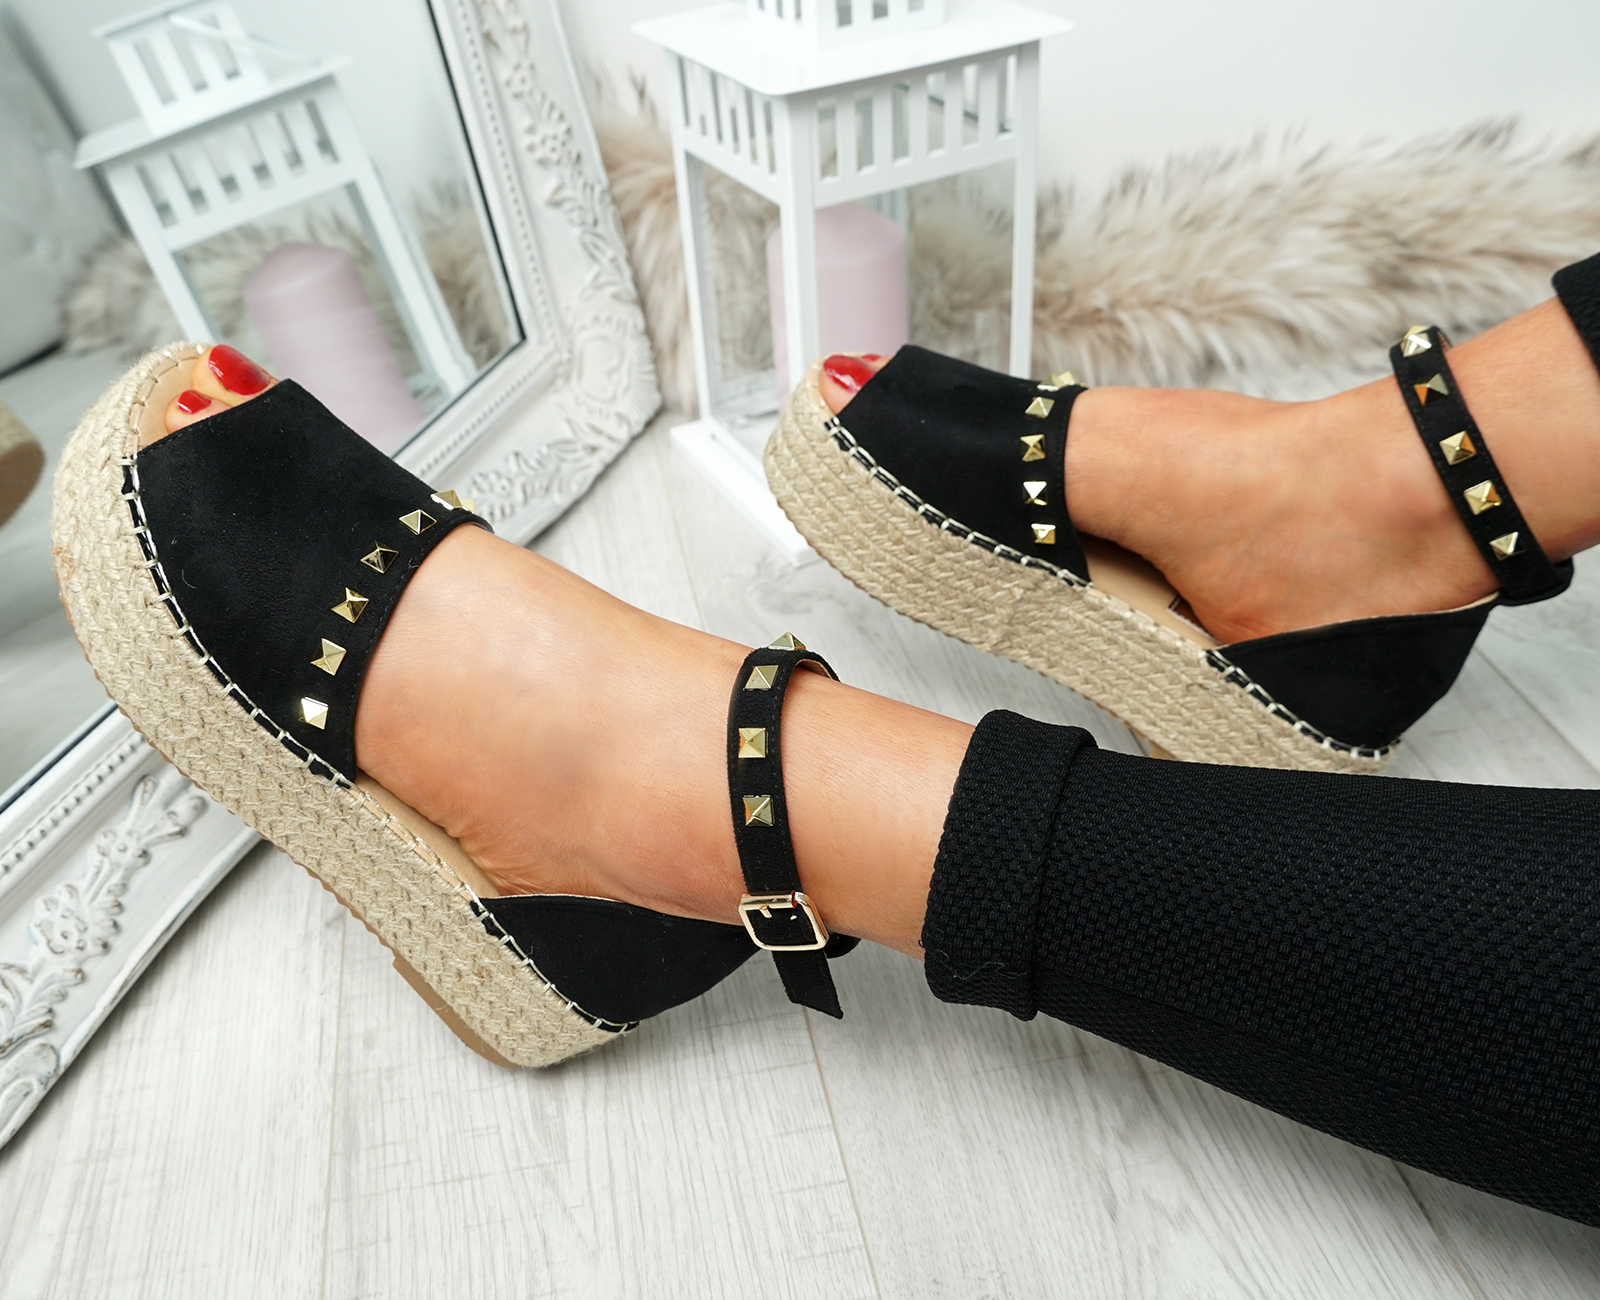 WOMENS-LADIES-ROCK-STUDS-ESPADRILLE-FLATFORM-PLATFORM-SANDALS-CASUAL-SHOES-SIZE thumbnail 13